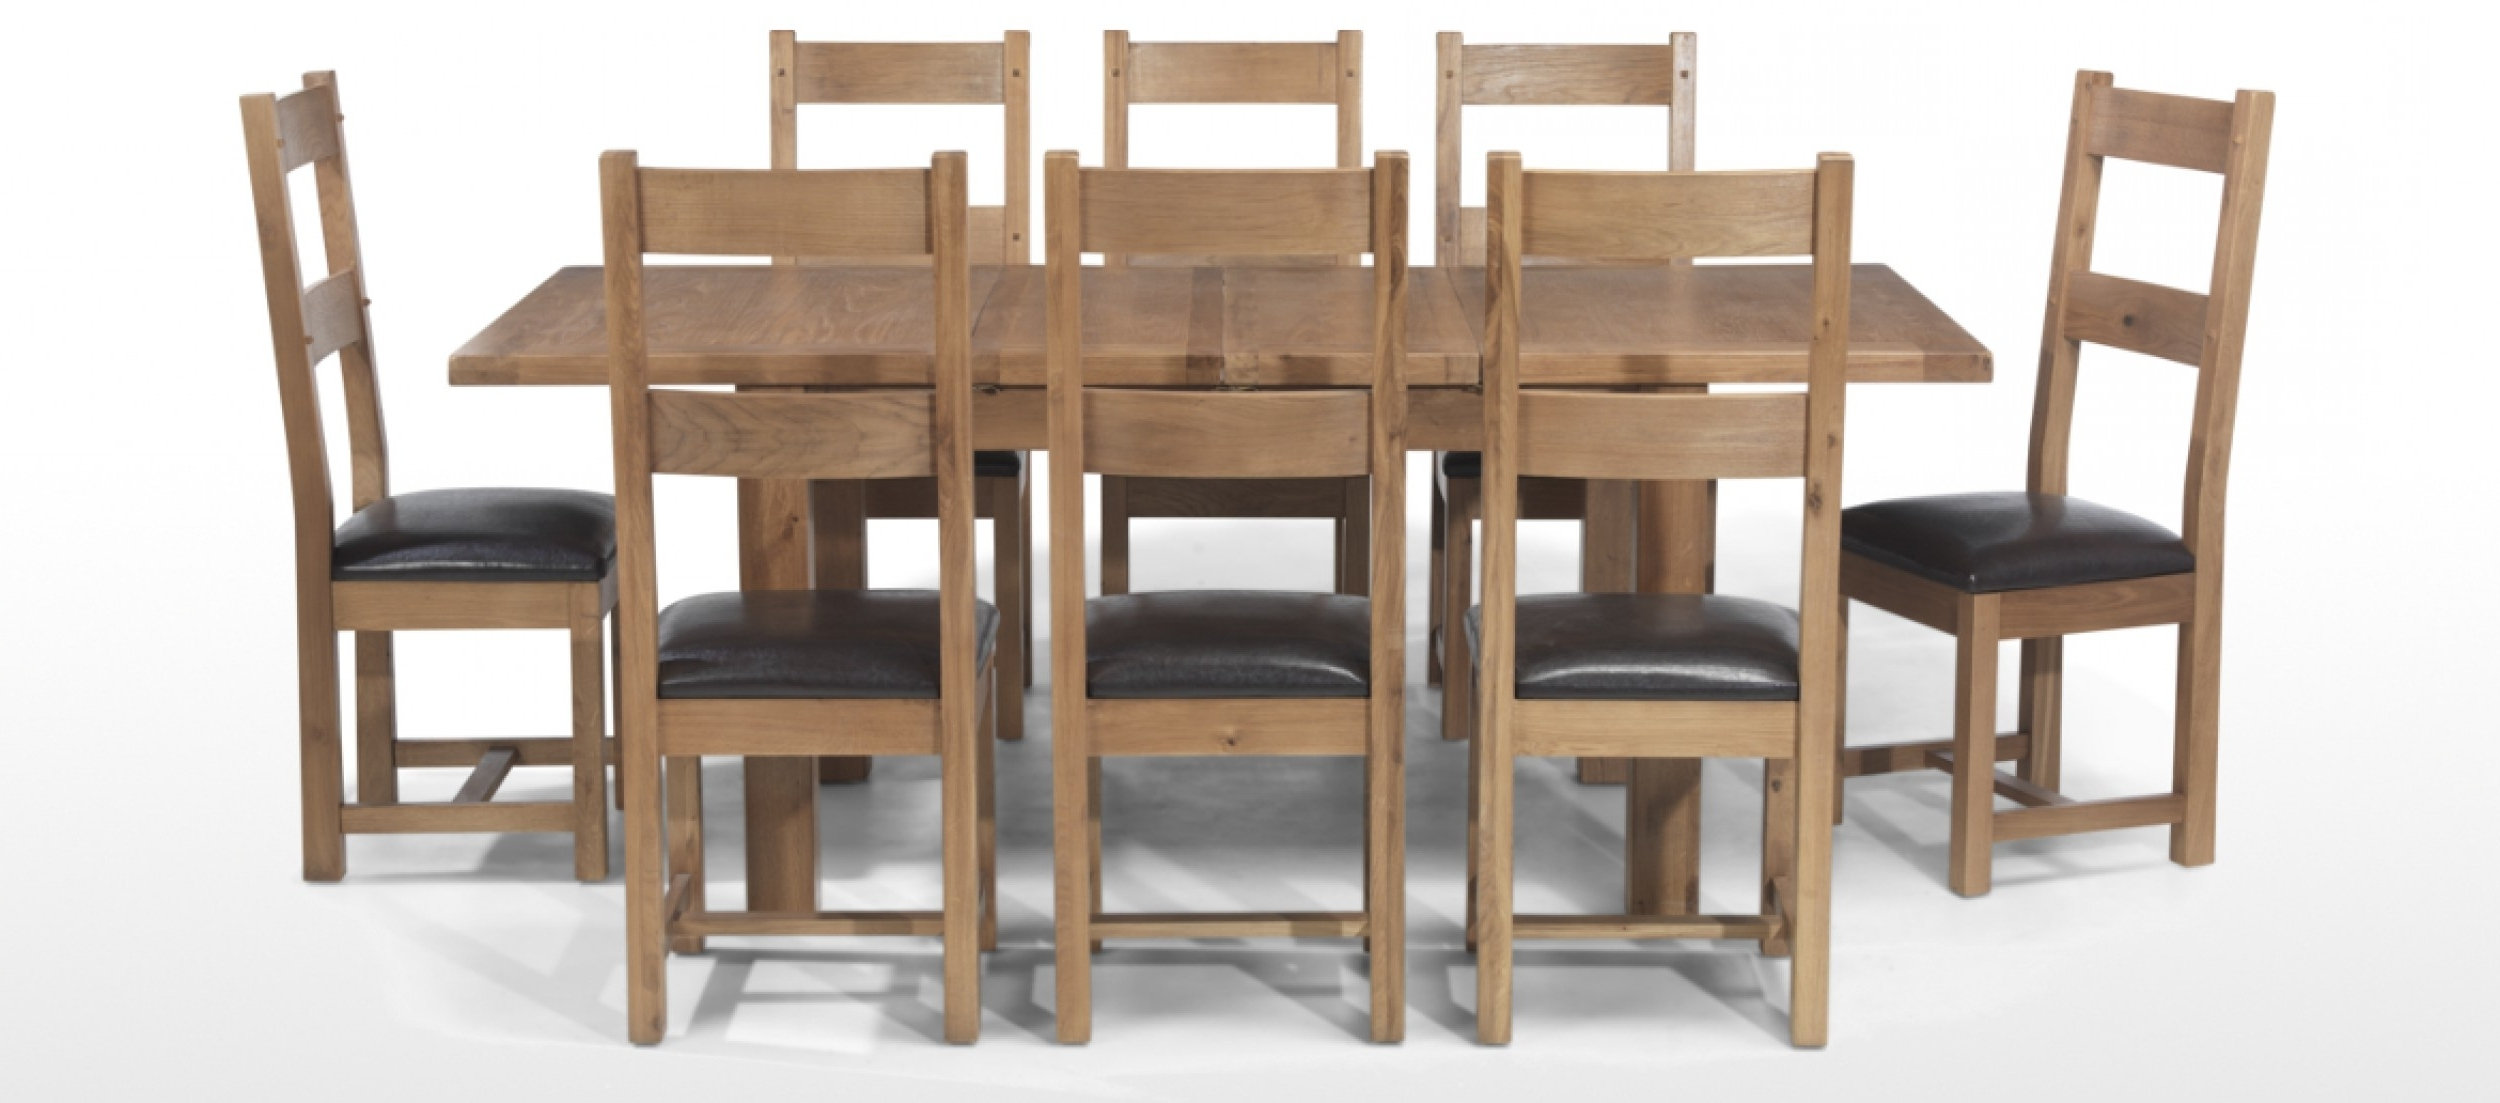 Quercus Within Most Current 8 Chairs Dining Tables (Gallery 7 of 25)